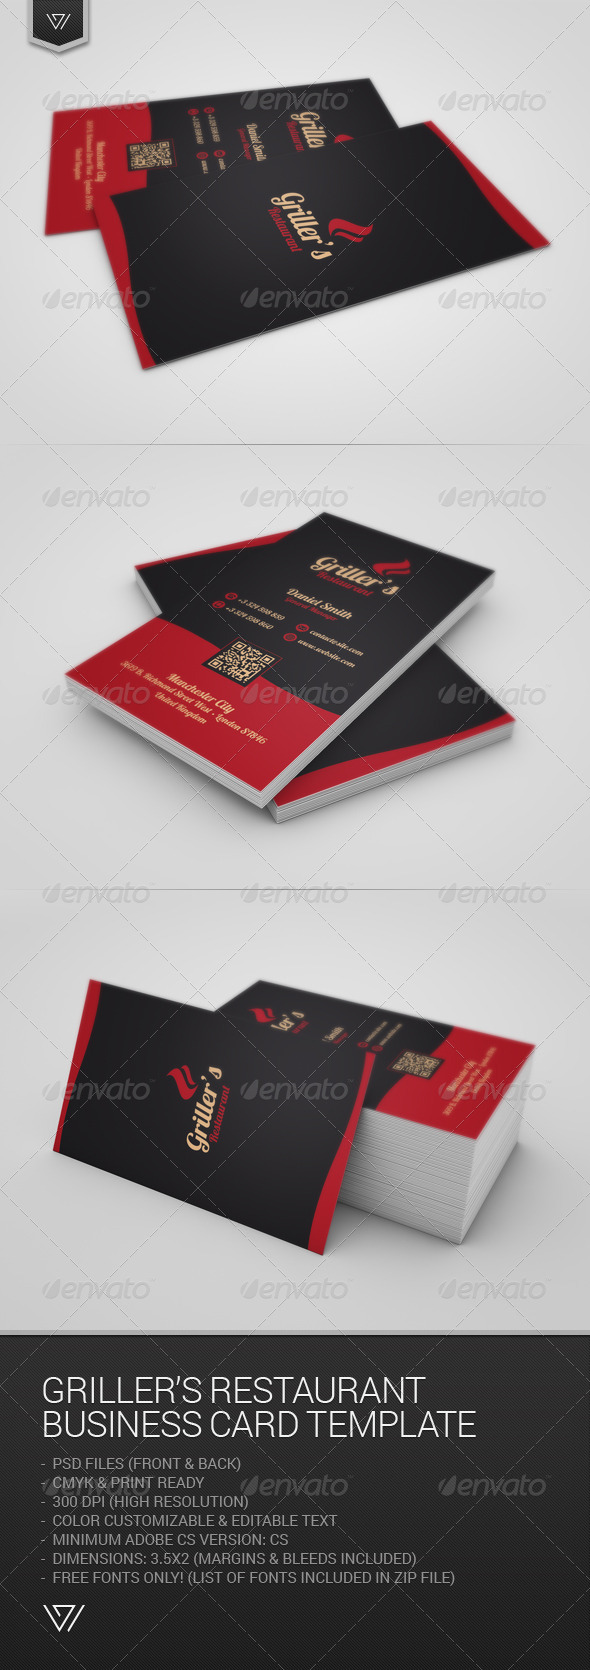 GraphicRiver Griller s Restaurant Business Card 7781731